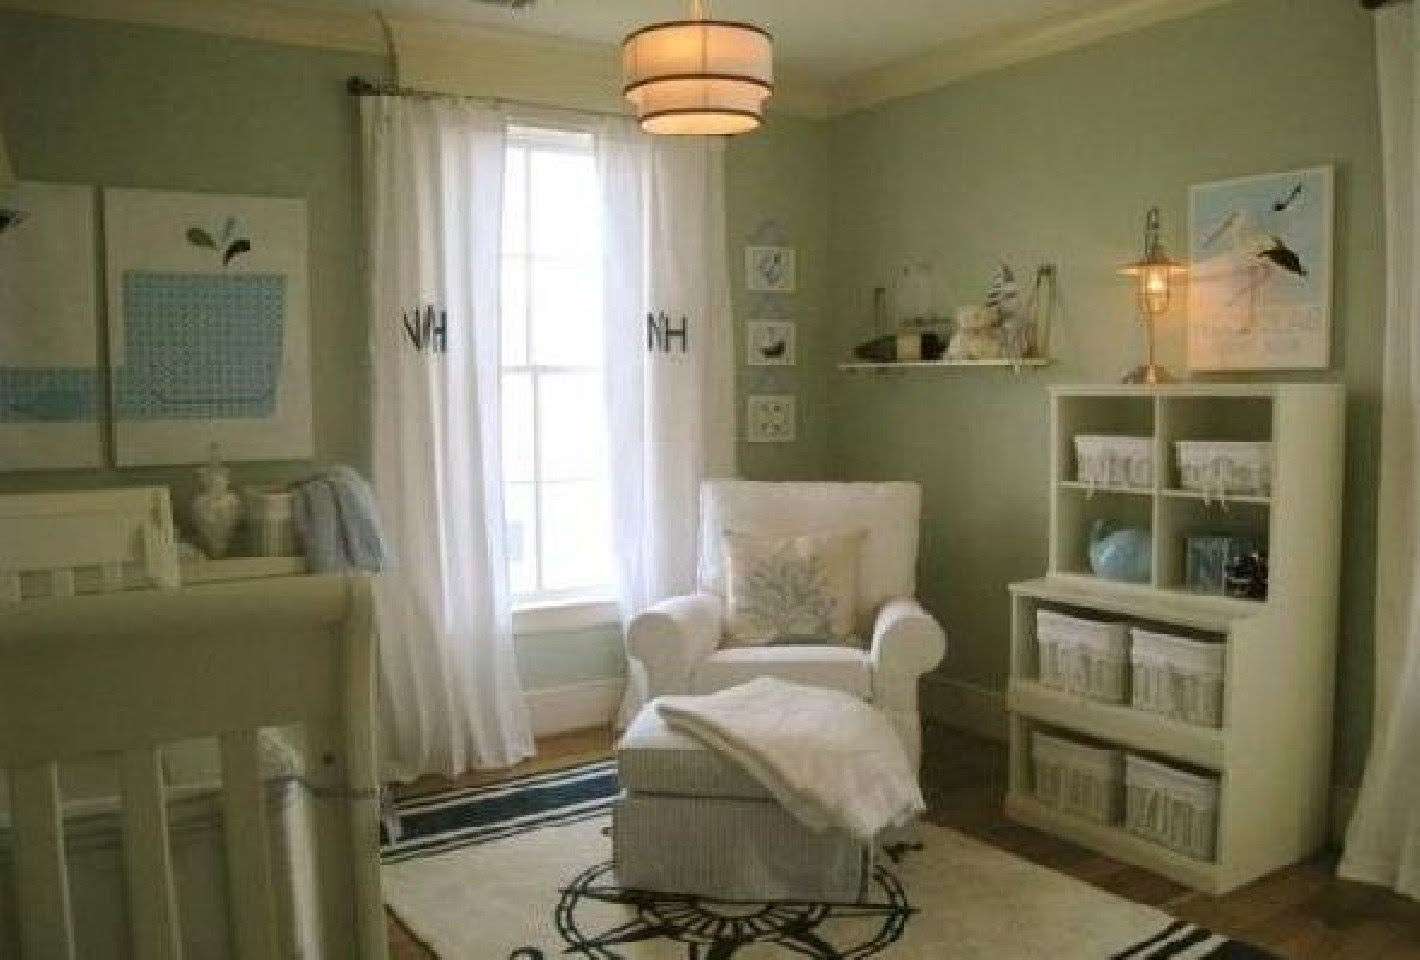 incredible baby nursery ideas for small spaces - youtube OIUUZFH